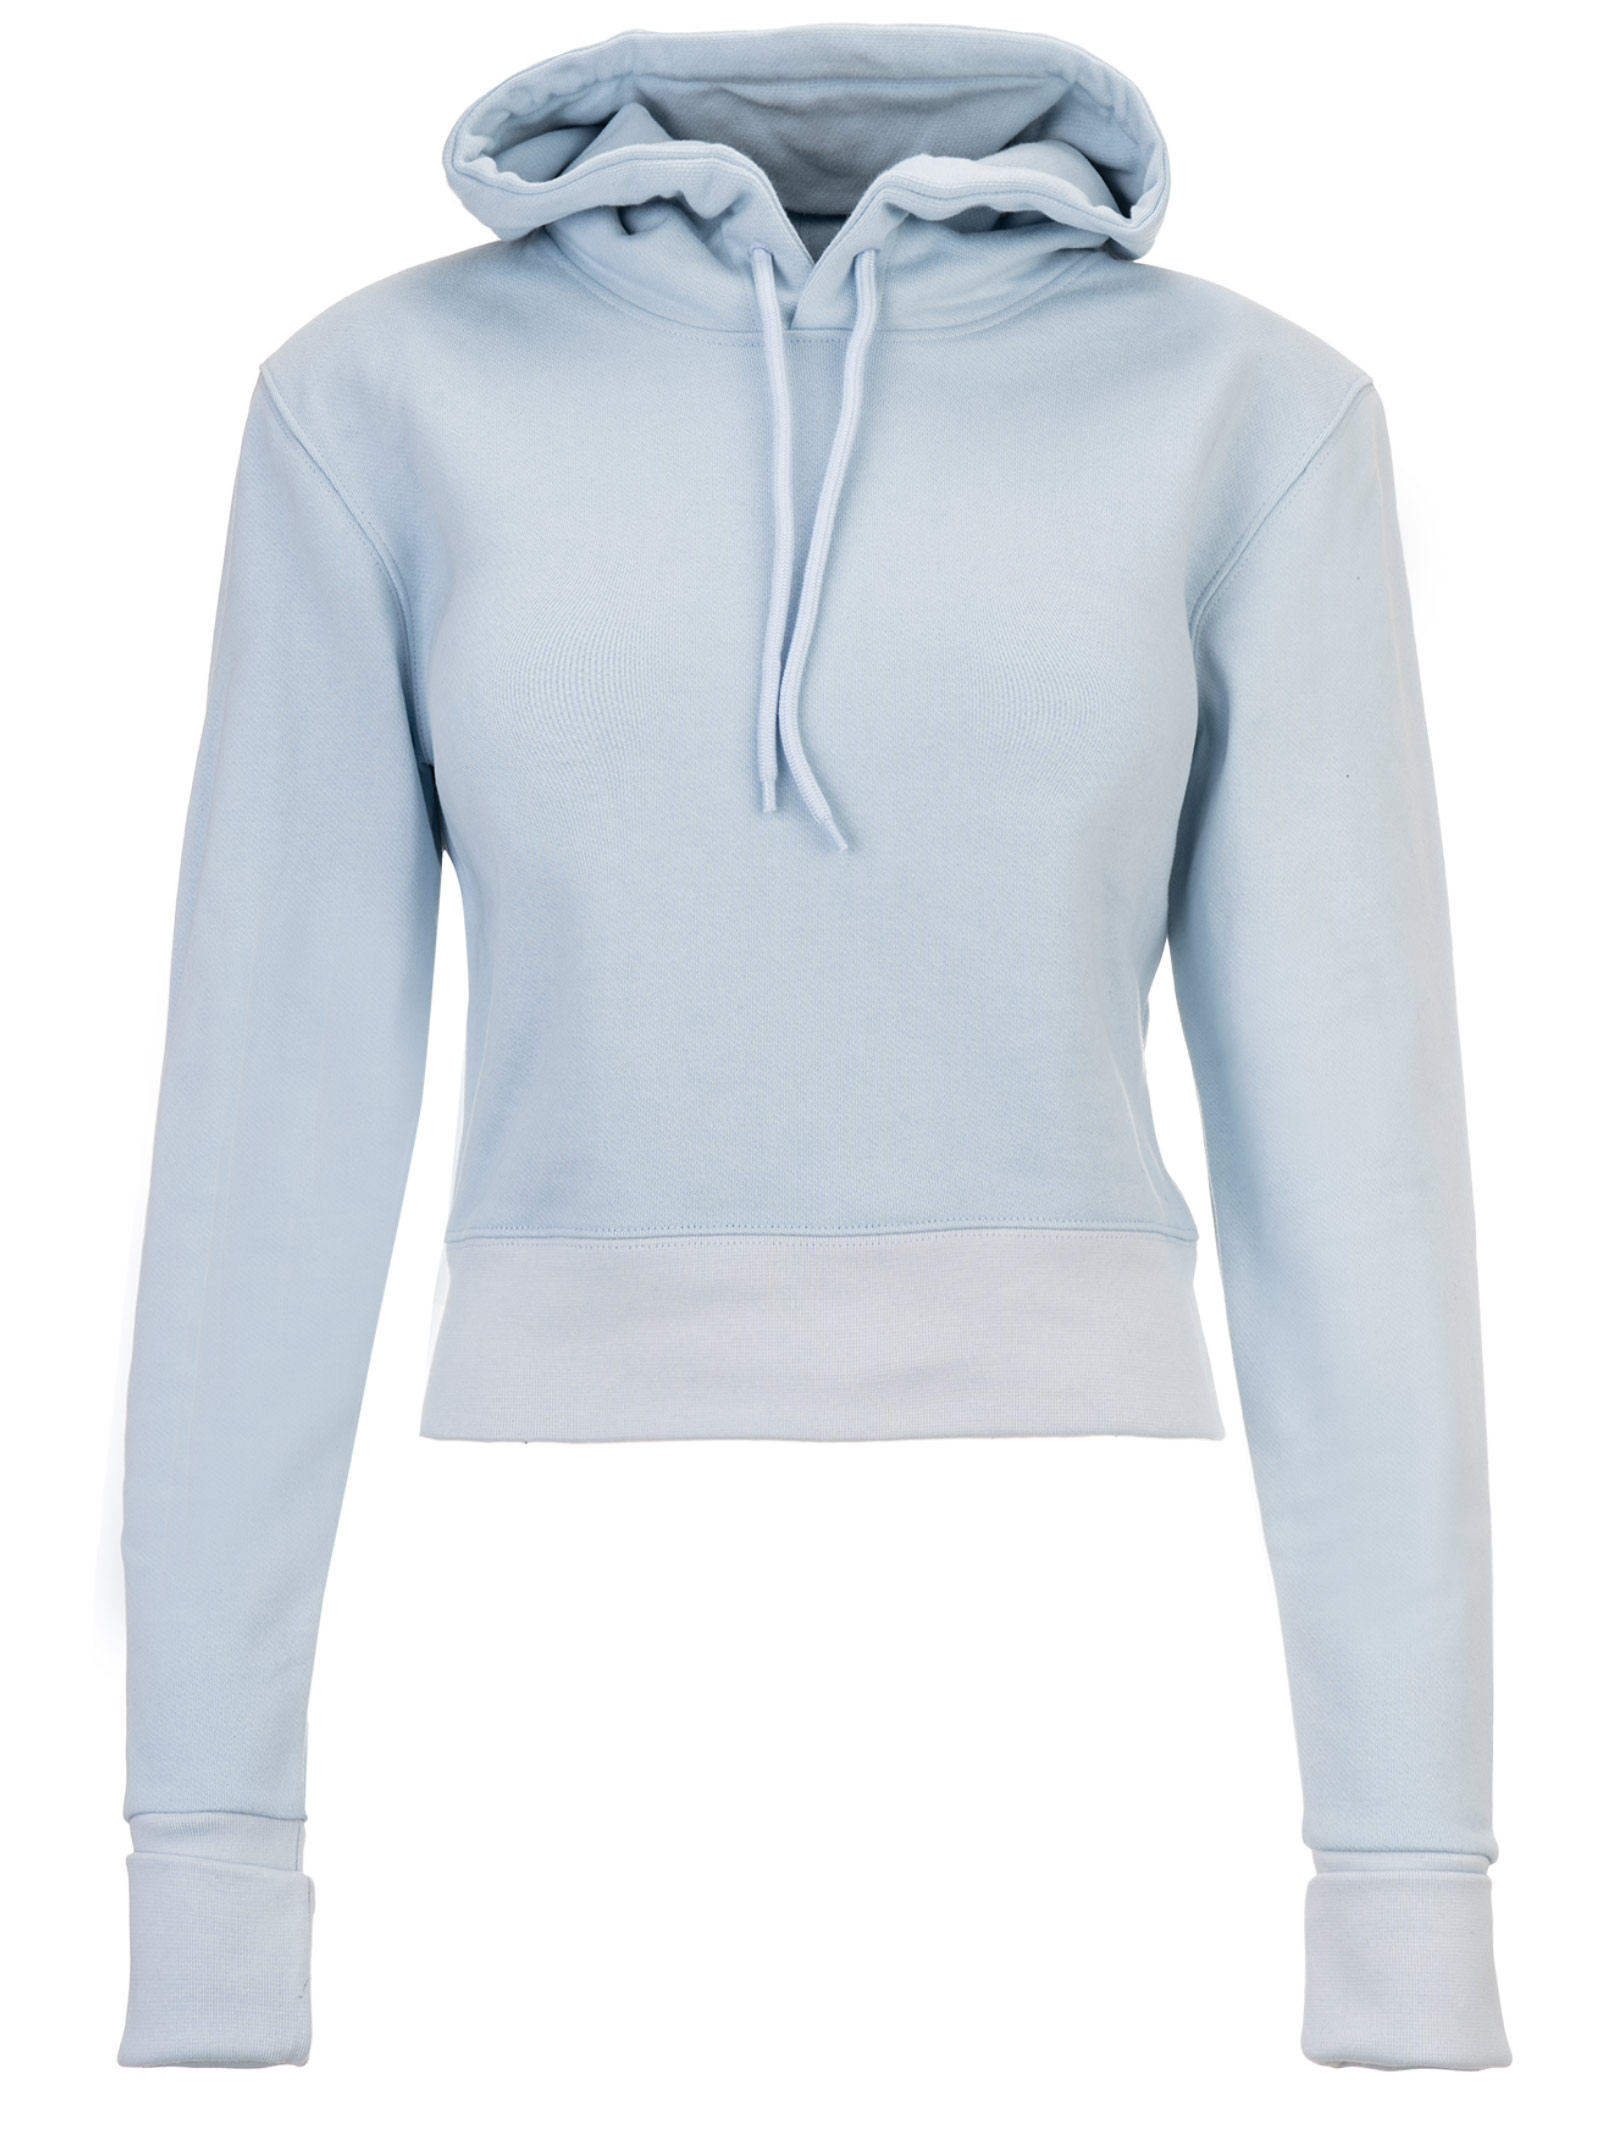 A Plan Application sweatshirt